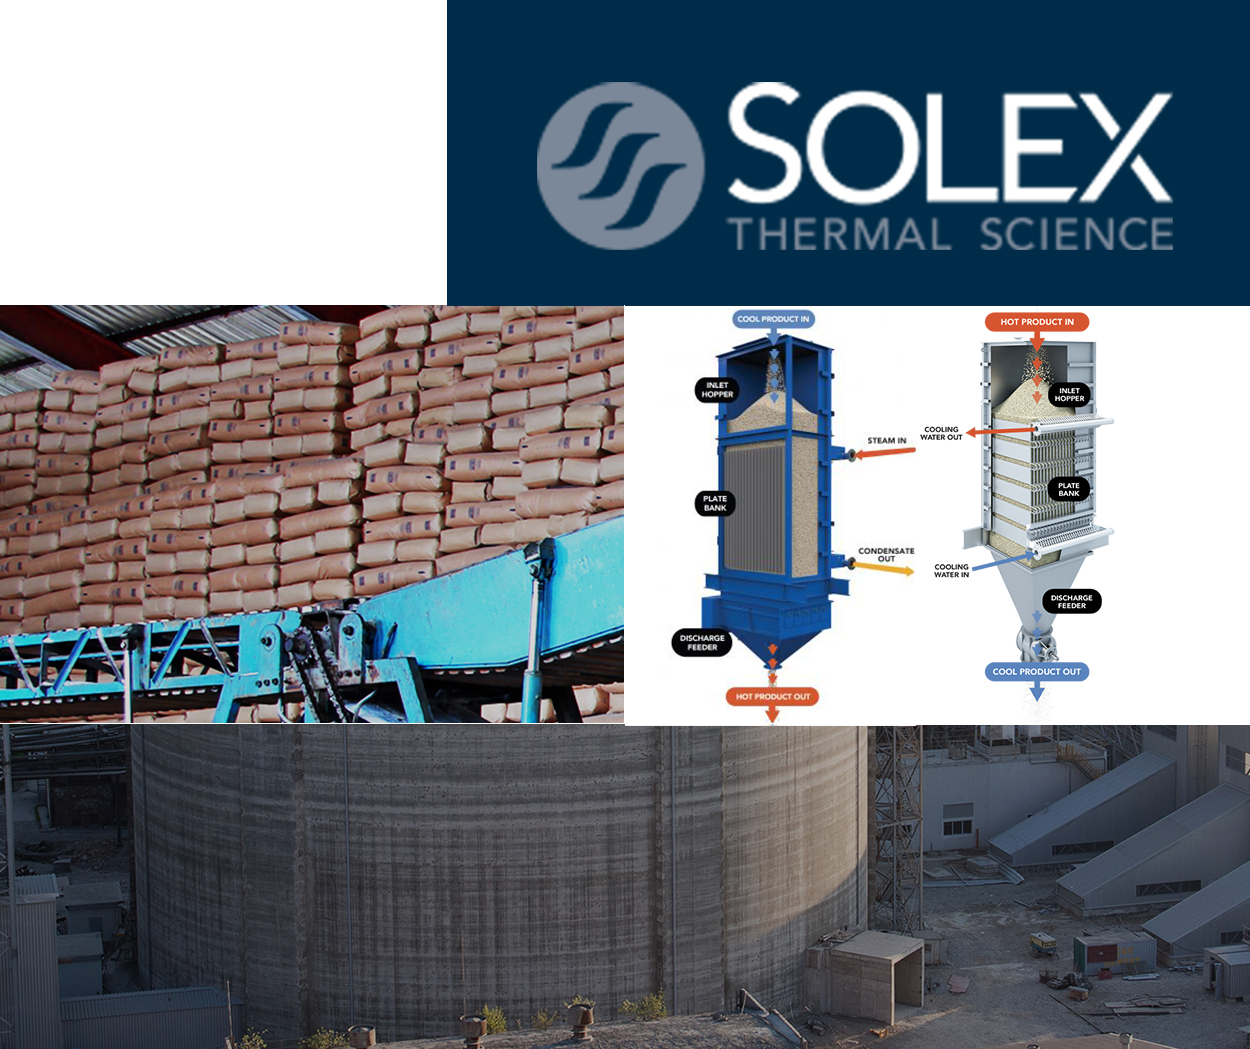 Solex Thermal Science